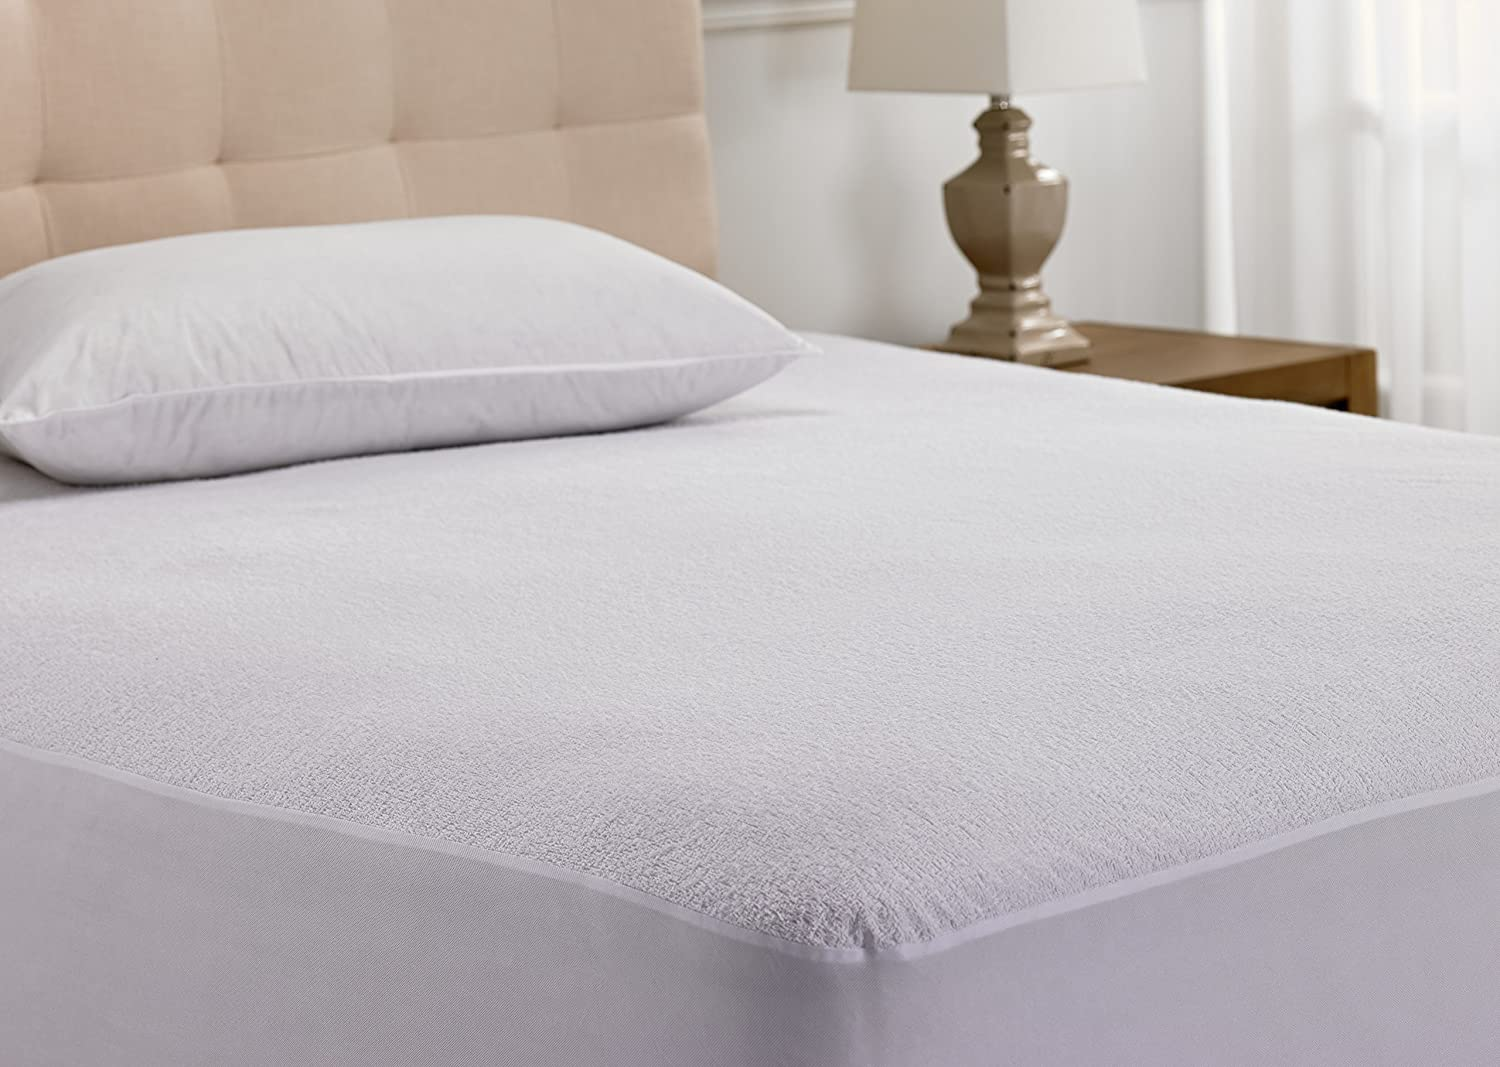 Hanna Kay Mattress Protector Waterproof Breathable and Hypoallergenic Twin Size